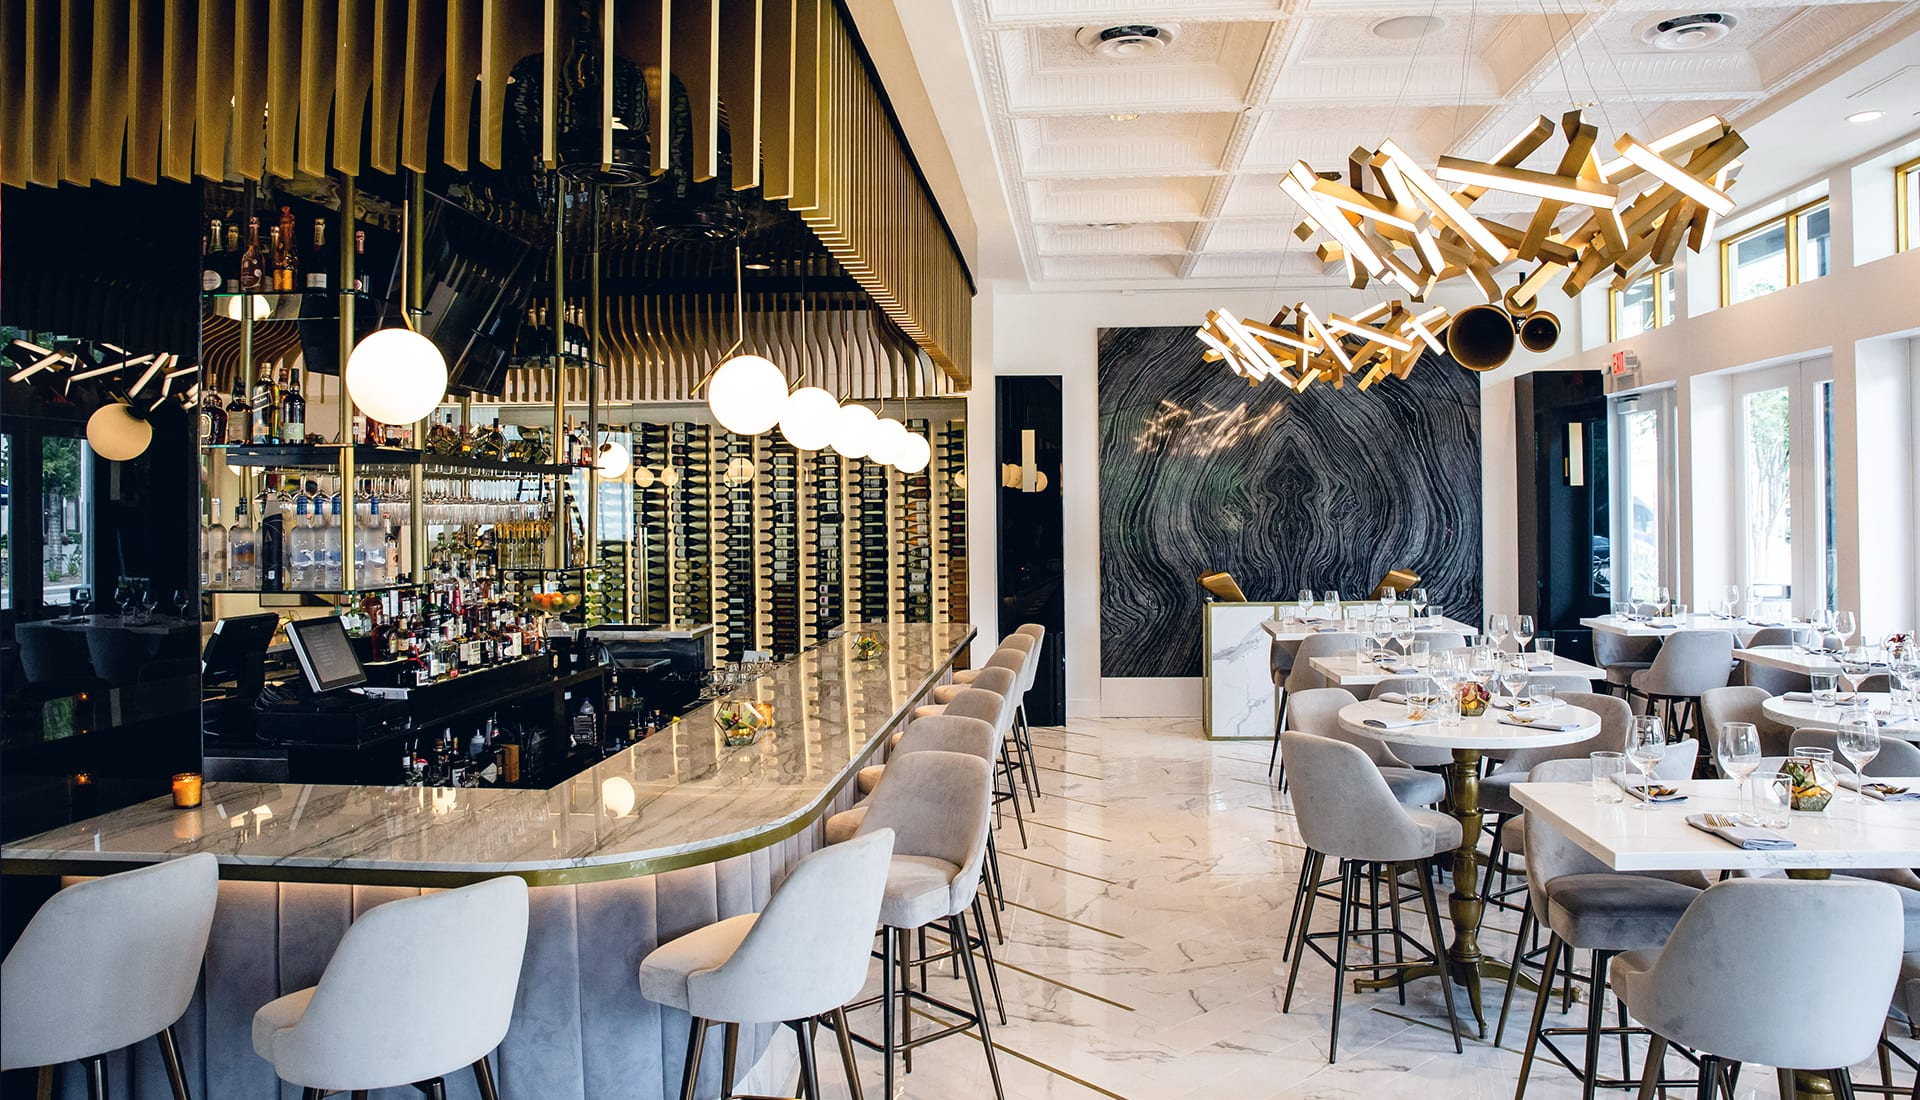 A glamorous dining room with white marble tops, tall upholstered chairs, and gold accents